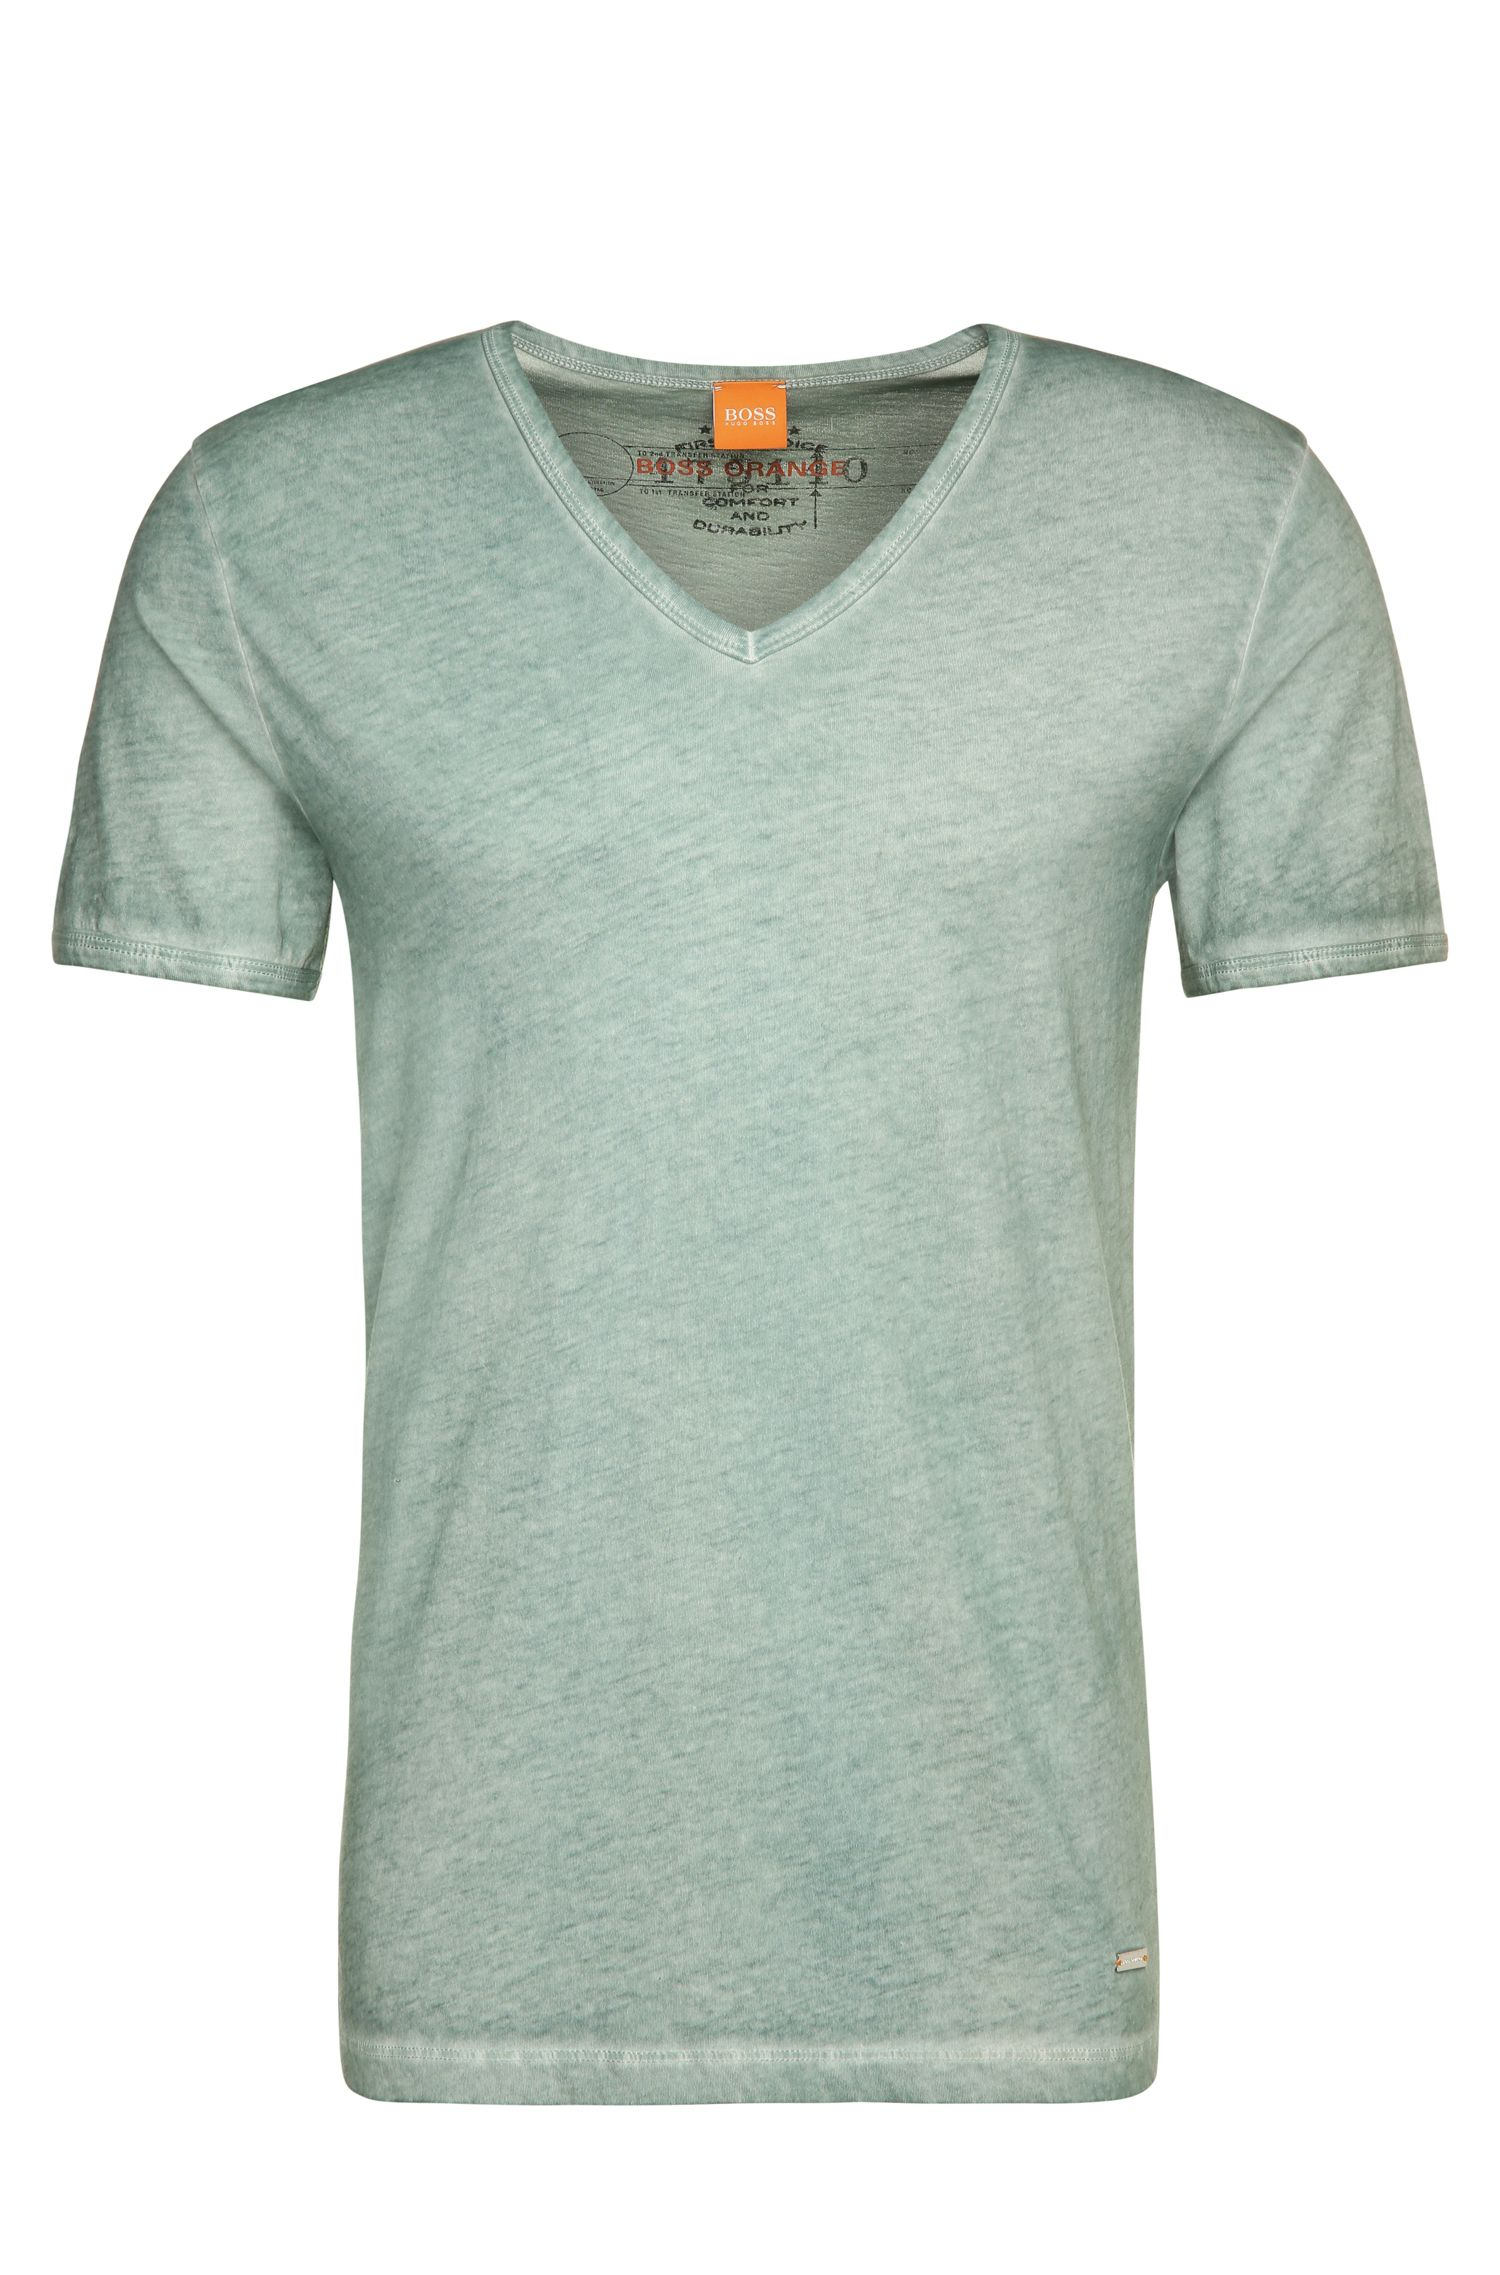 T-shirt Regular Fit en coton garment dyed